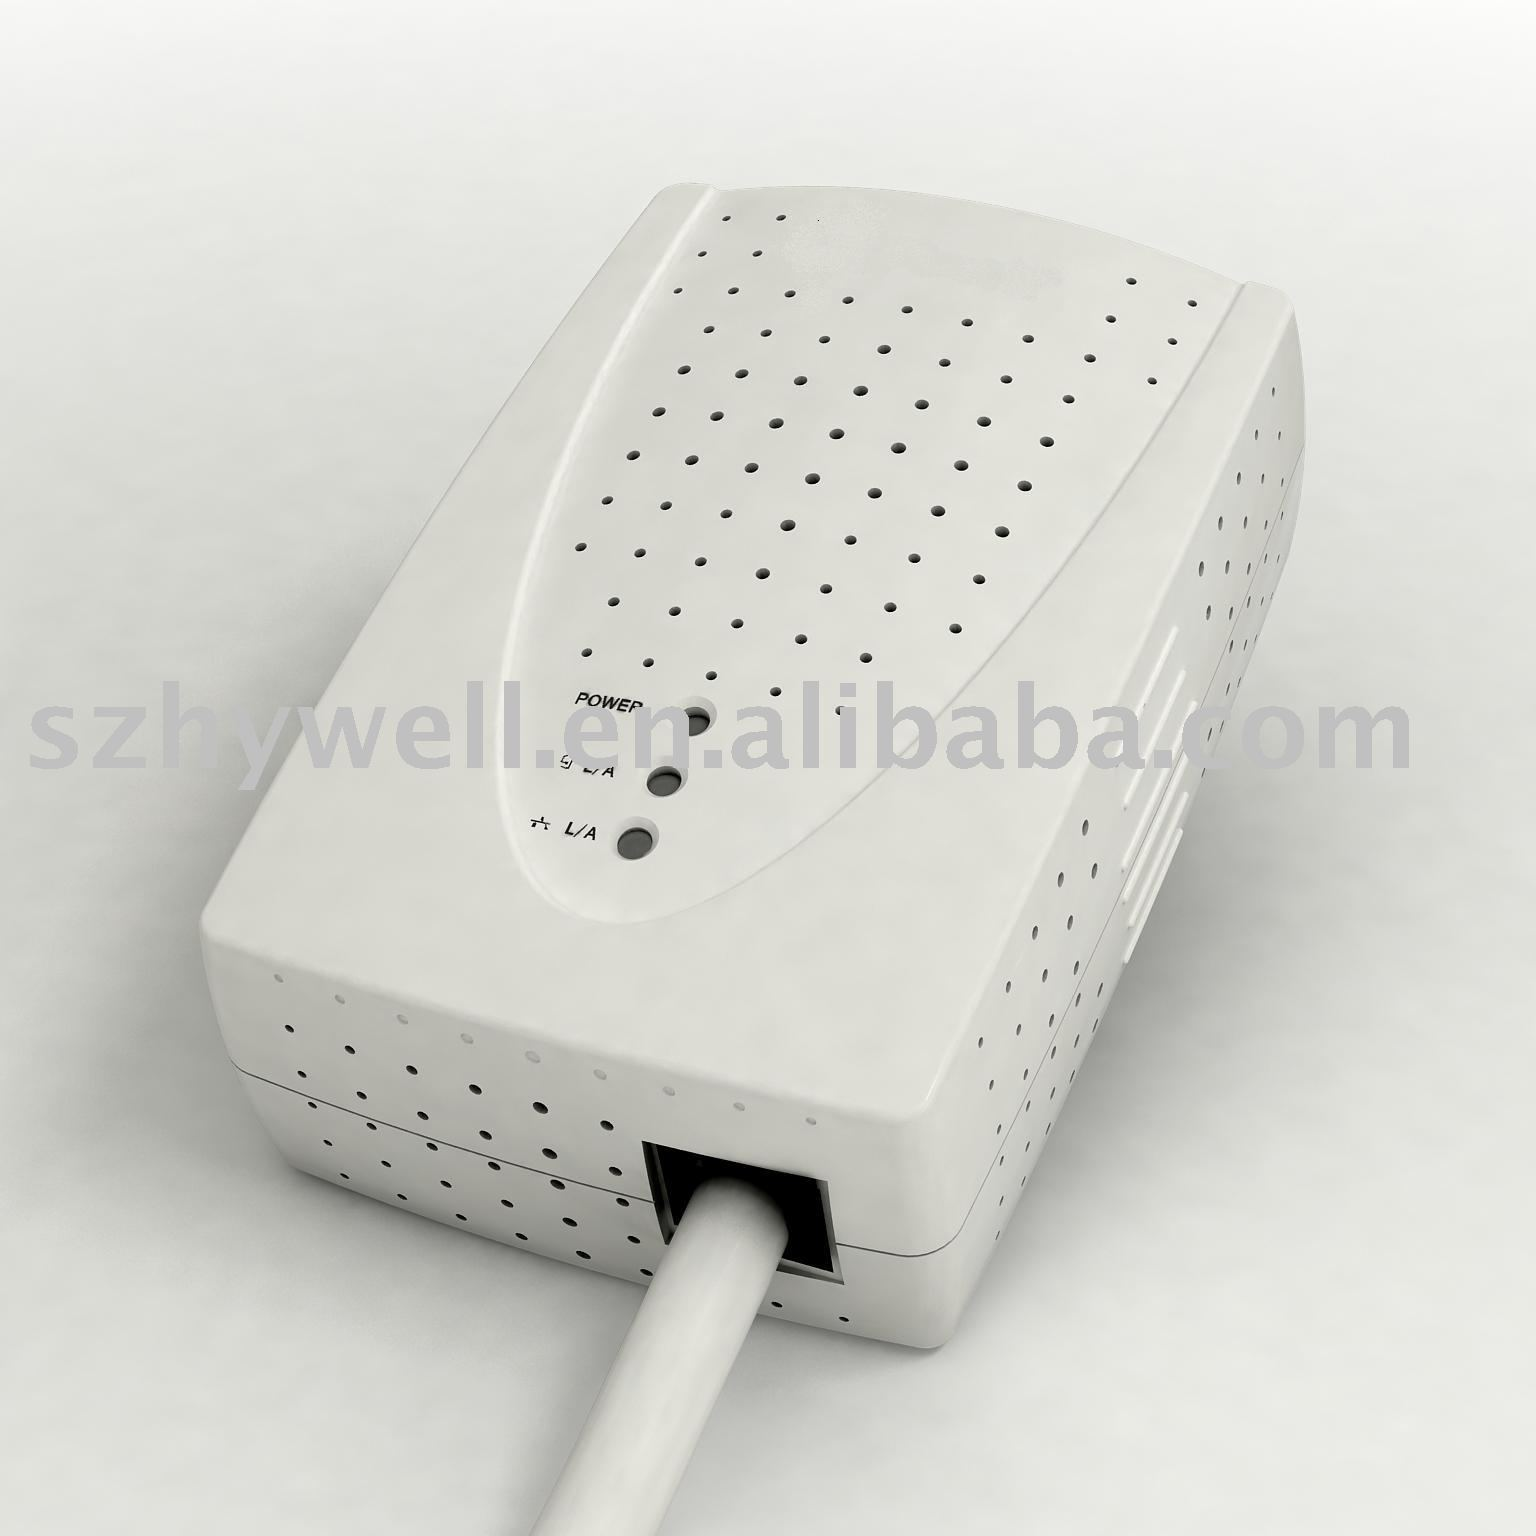 200Mbps Homeplug Ethernet